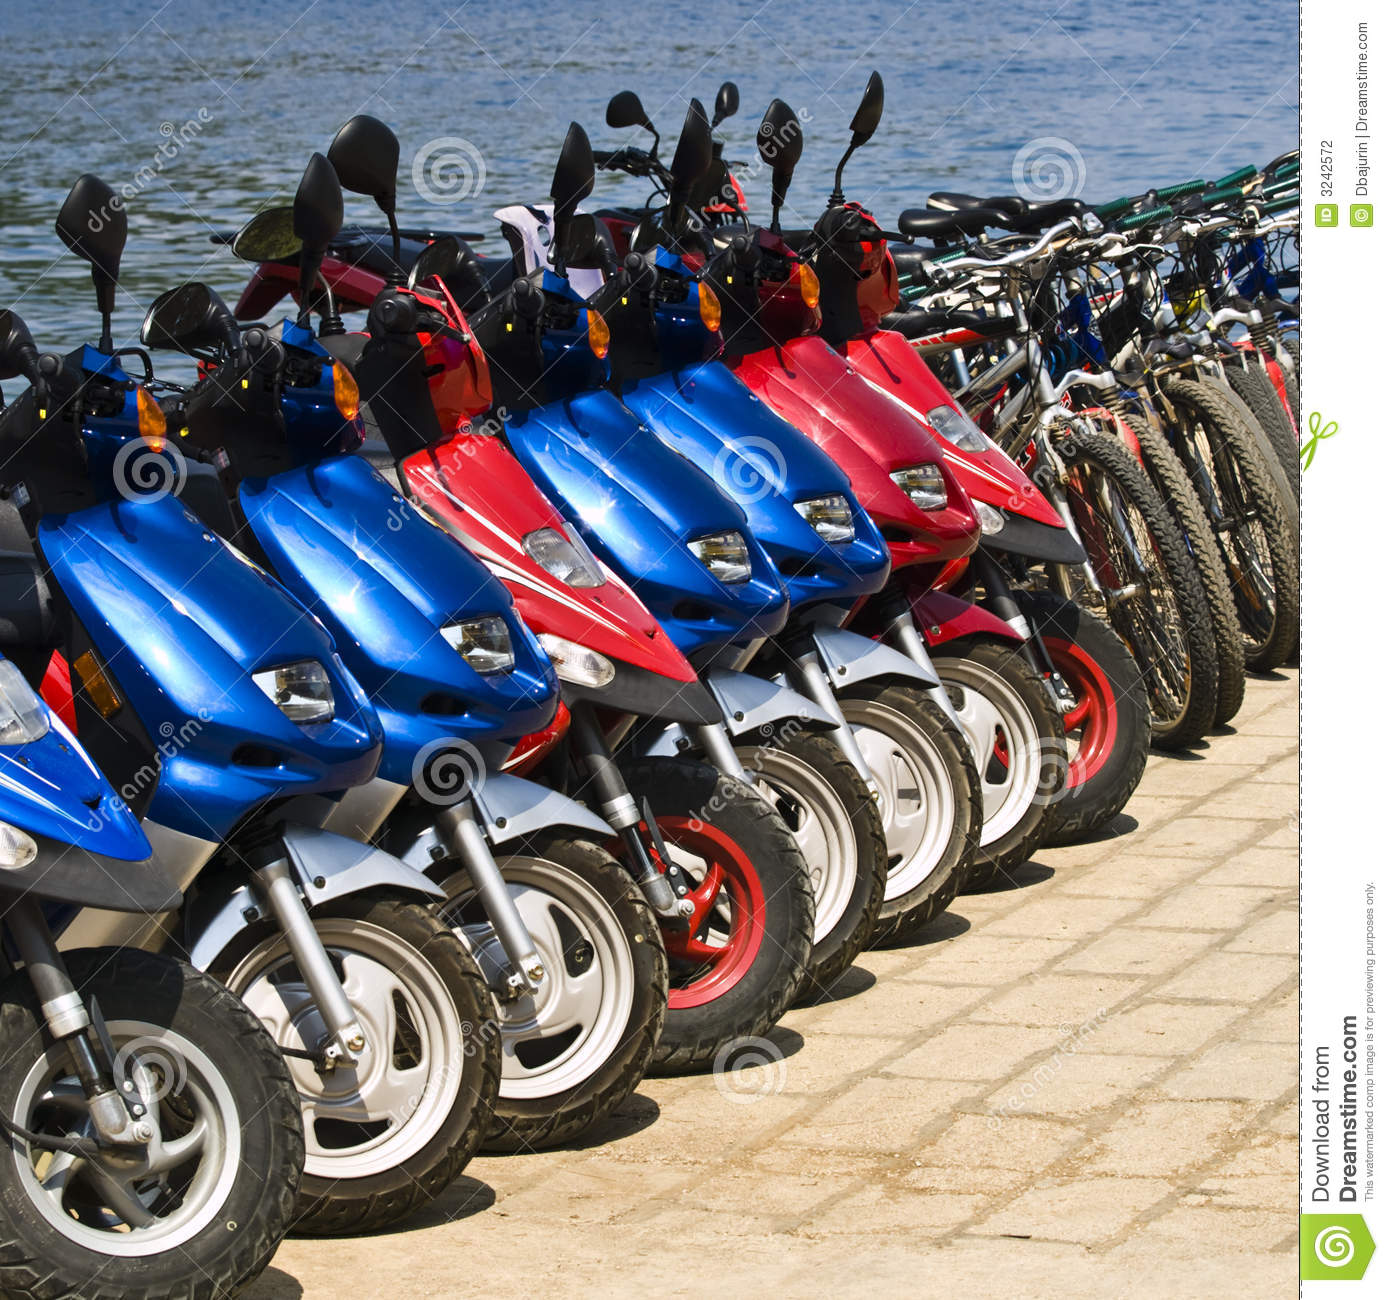 Rent a bike stock photography image 3242572 Motor cycle rentals